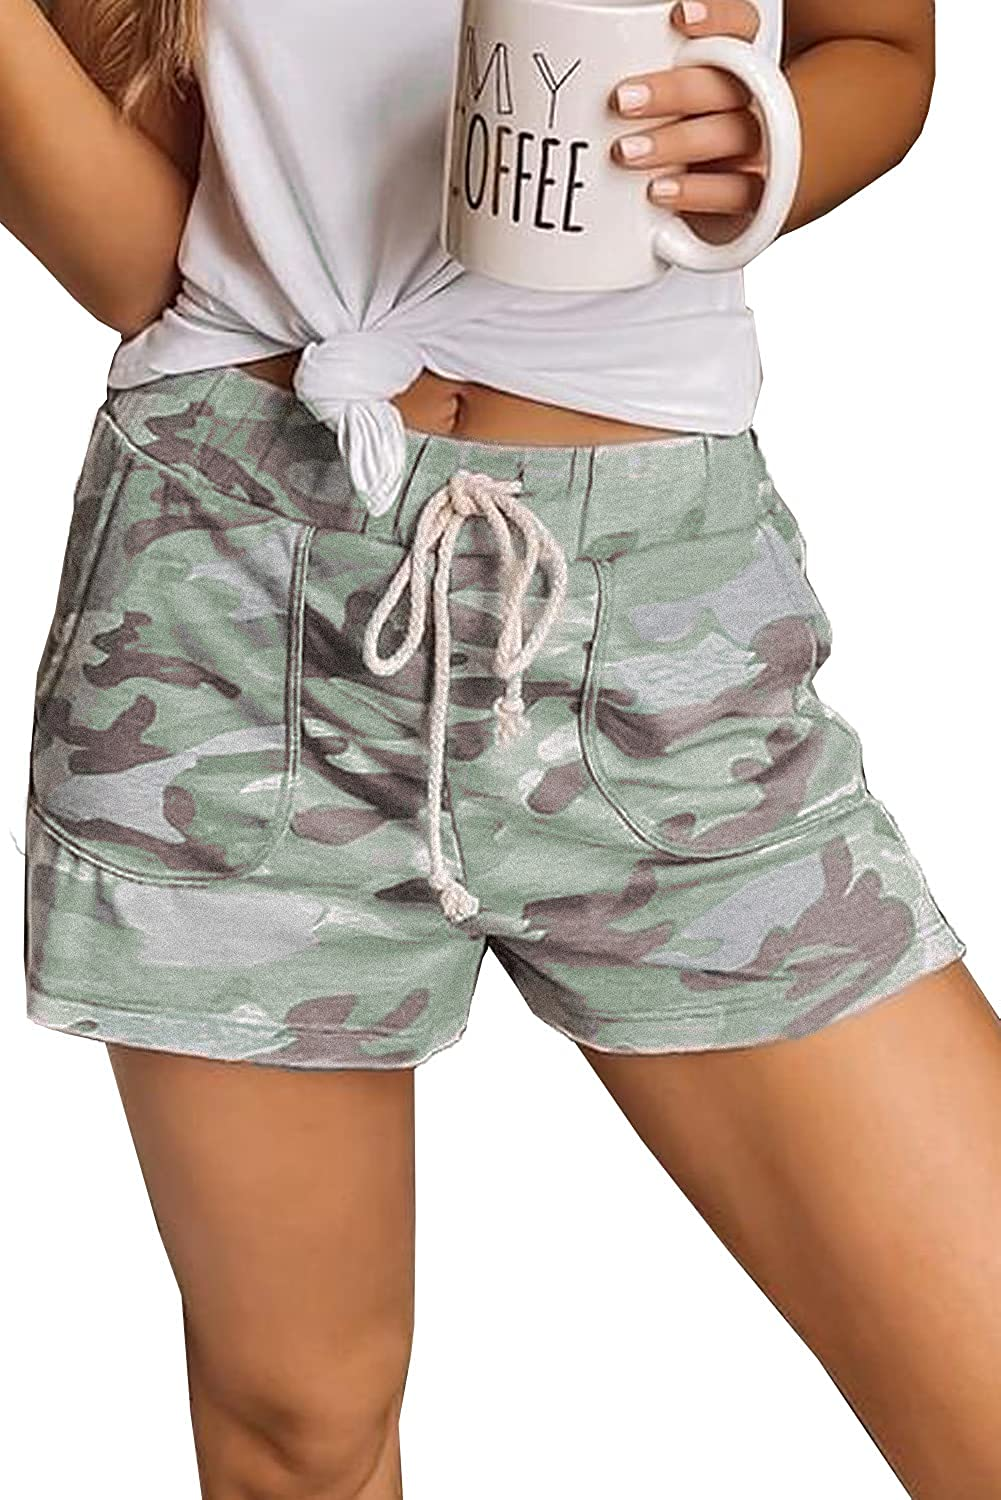 Denim Shorts for Women Frayed Distressed Jean Short Cute Mid Rise Ripped Hot Shorts Comfy Stretchy